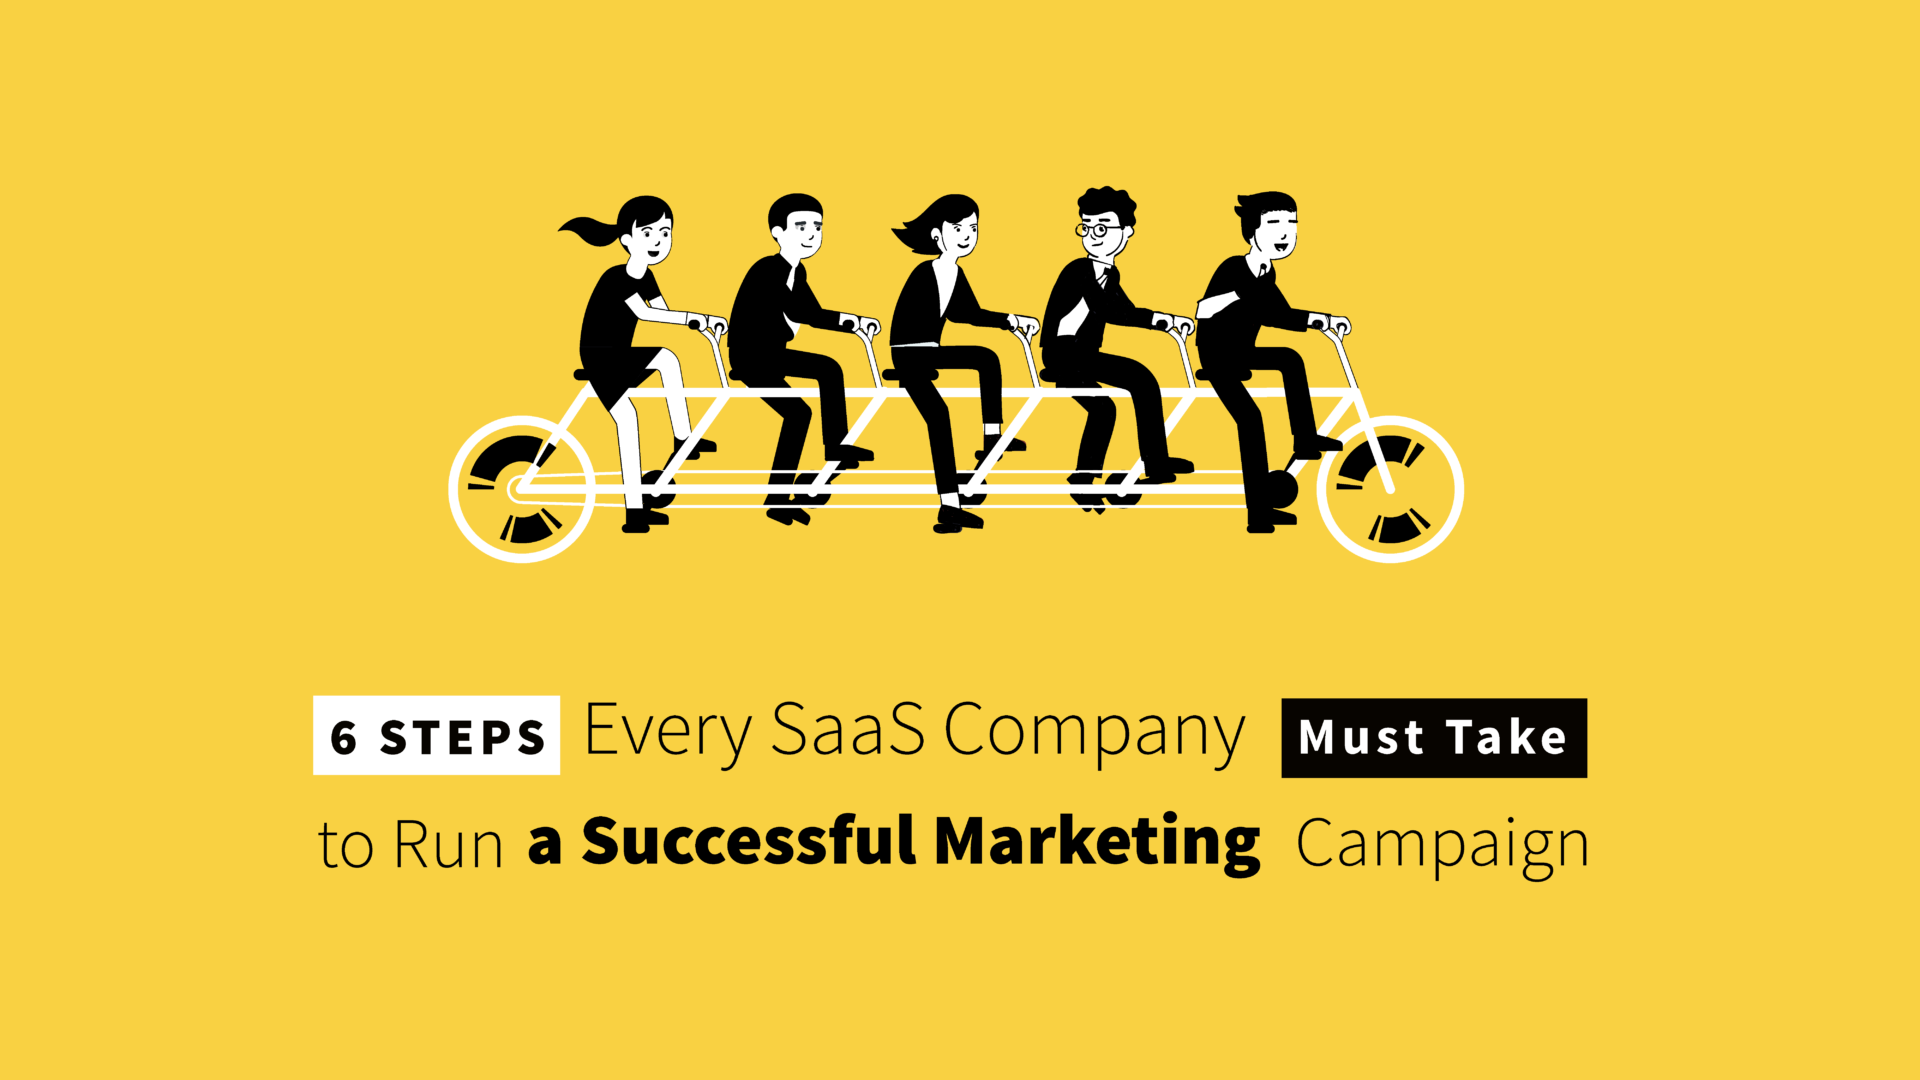 How to Run a Successful SaaS Marketing Campaign: A Guide